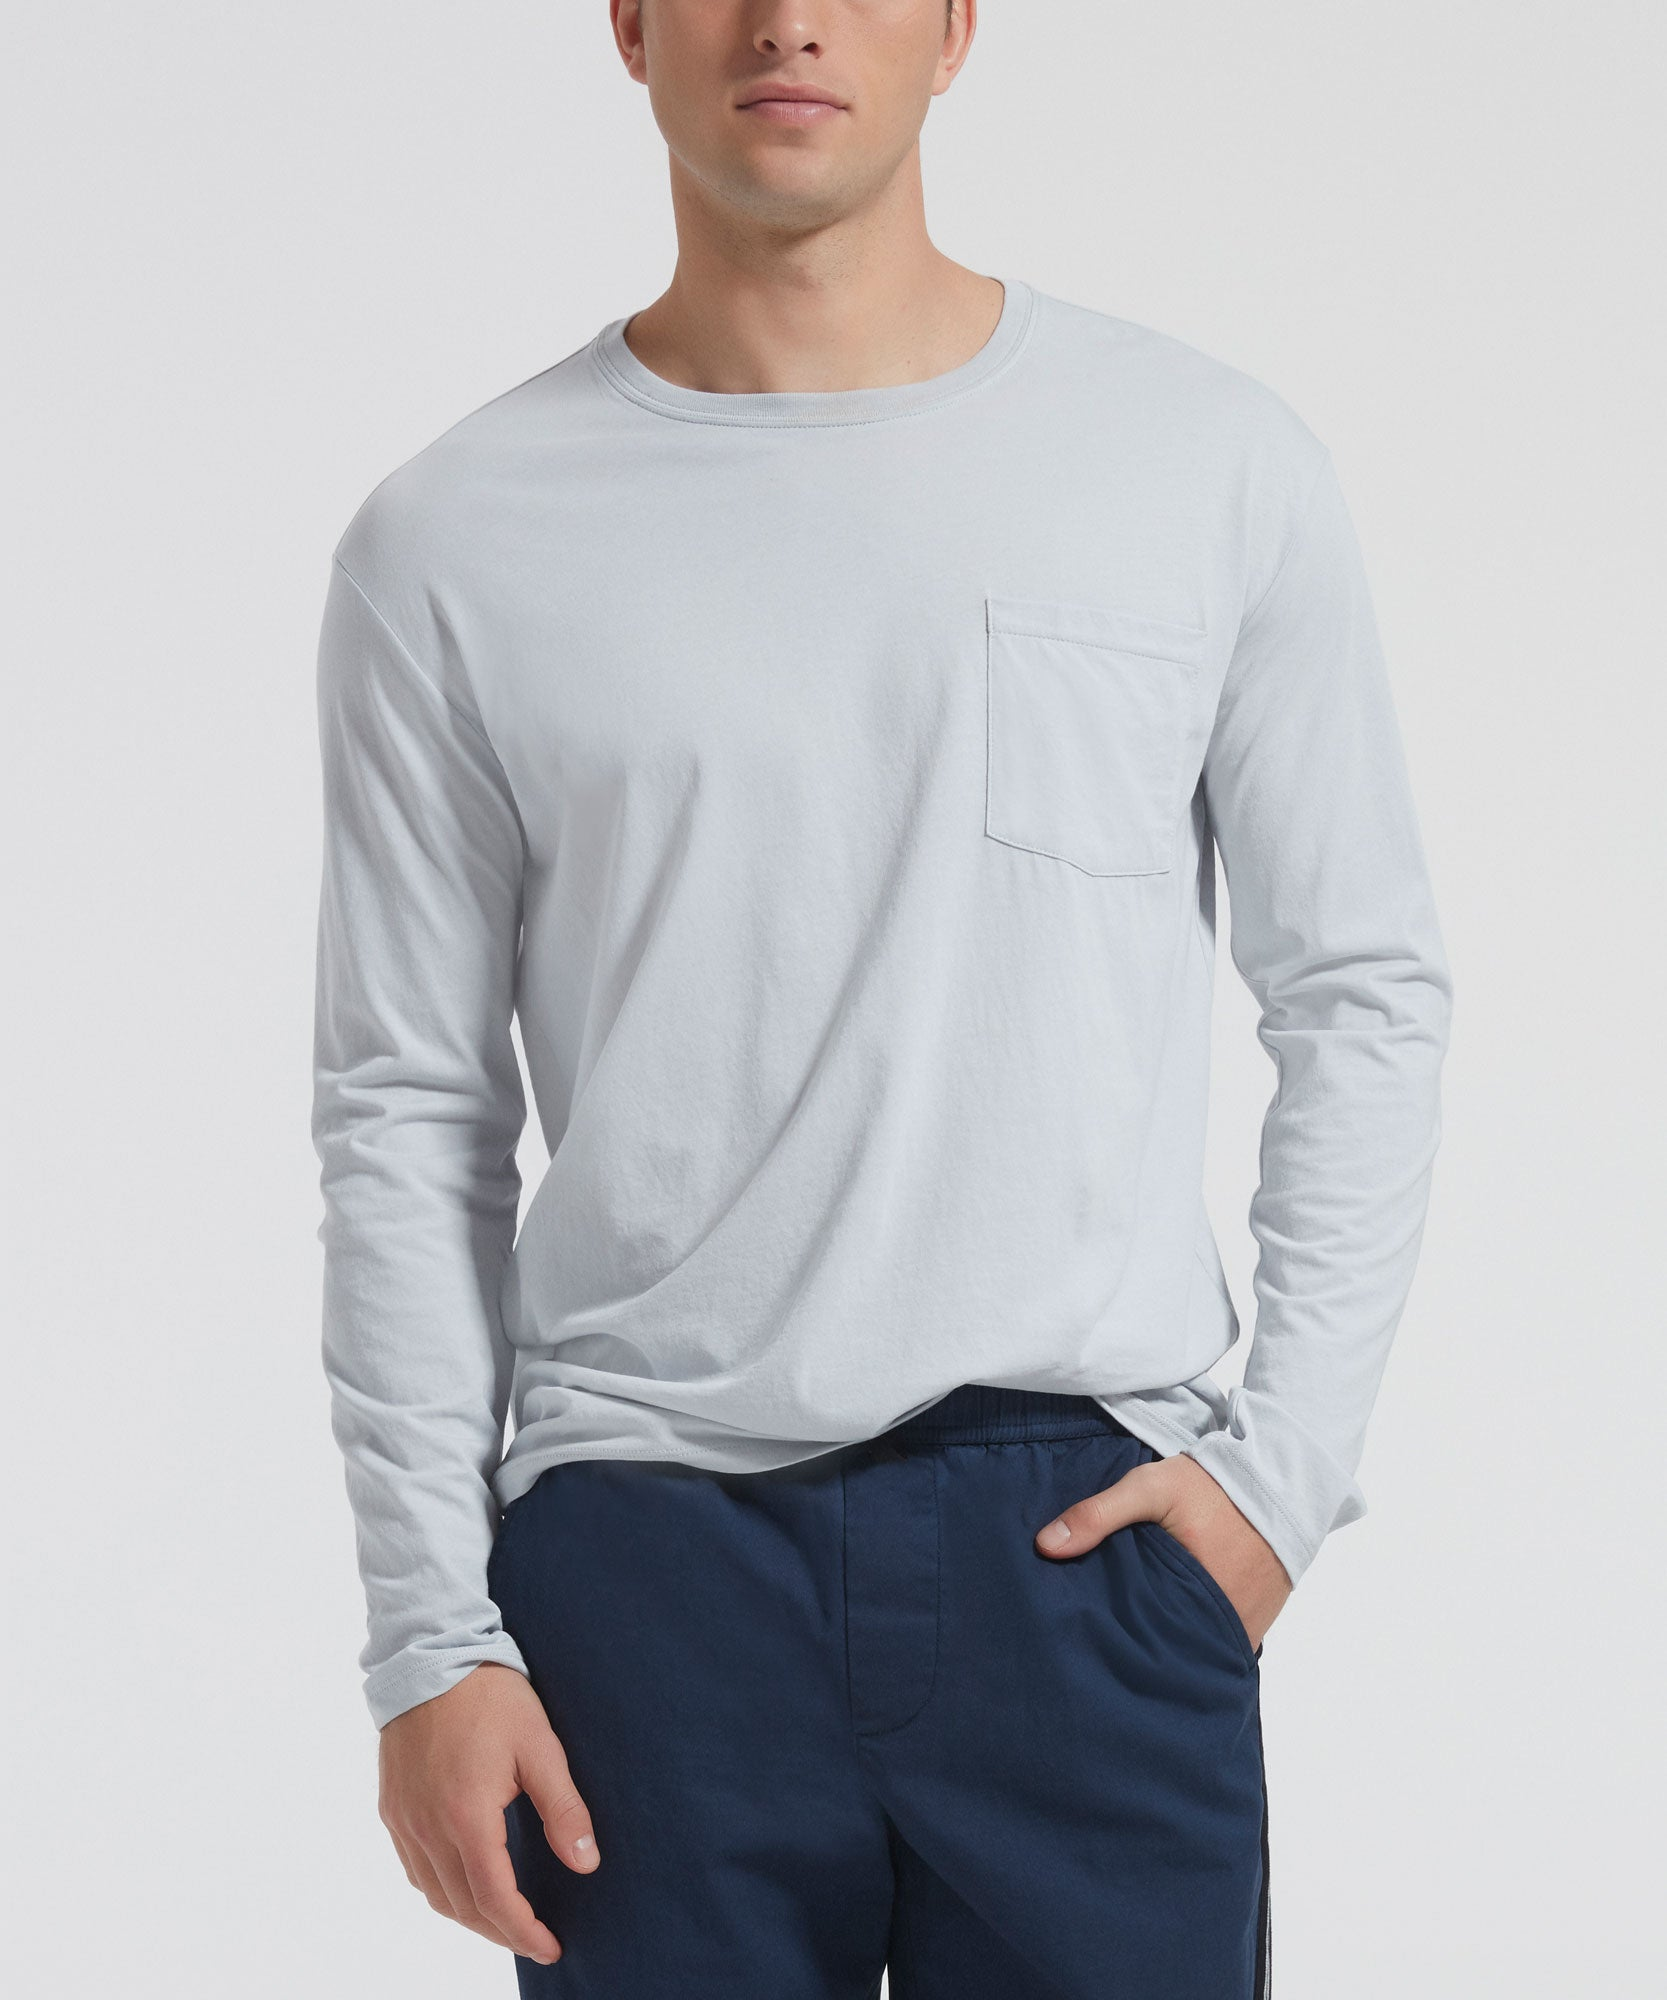 Pale Silver Classic Jersey Long Sleeve Crew Neck Pocket Tee - Men's Cotton Long Sleeve T-shirt by ATM Anthony Thomas Melillo